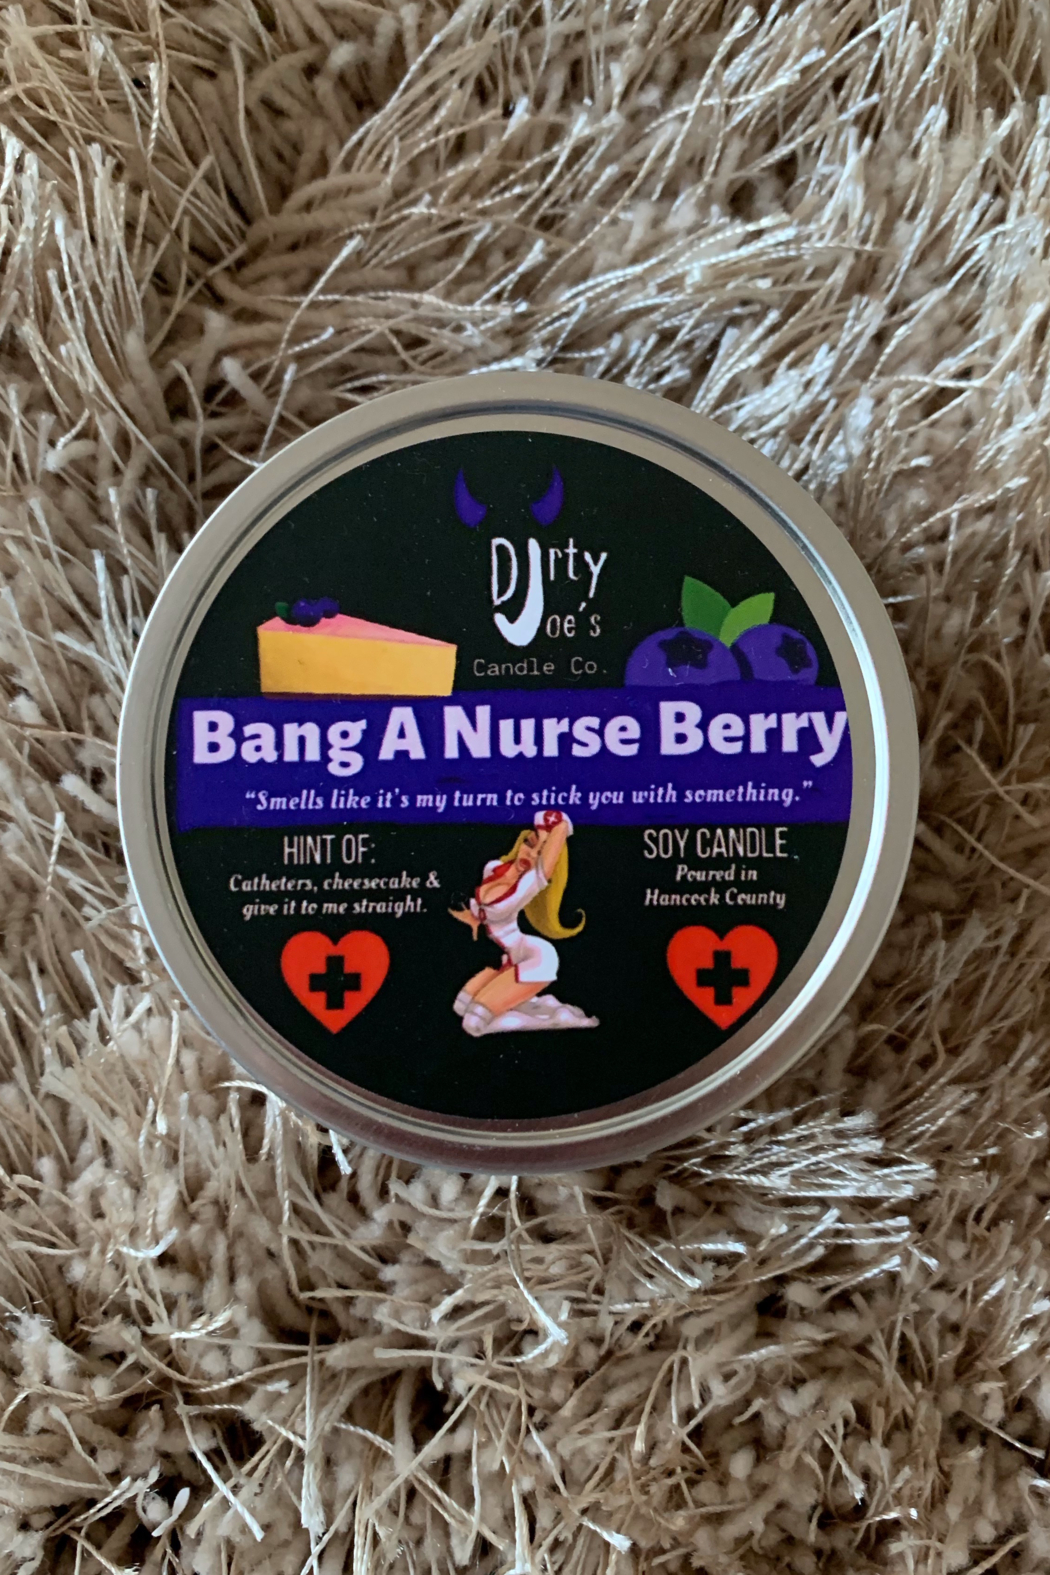 Dirty Joes Candle --Bang A Nurse Berry - Main Image